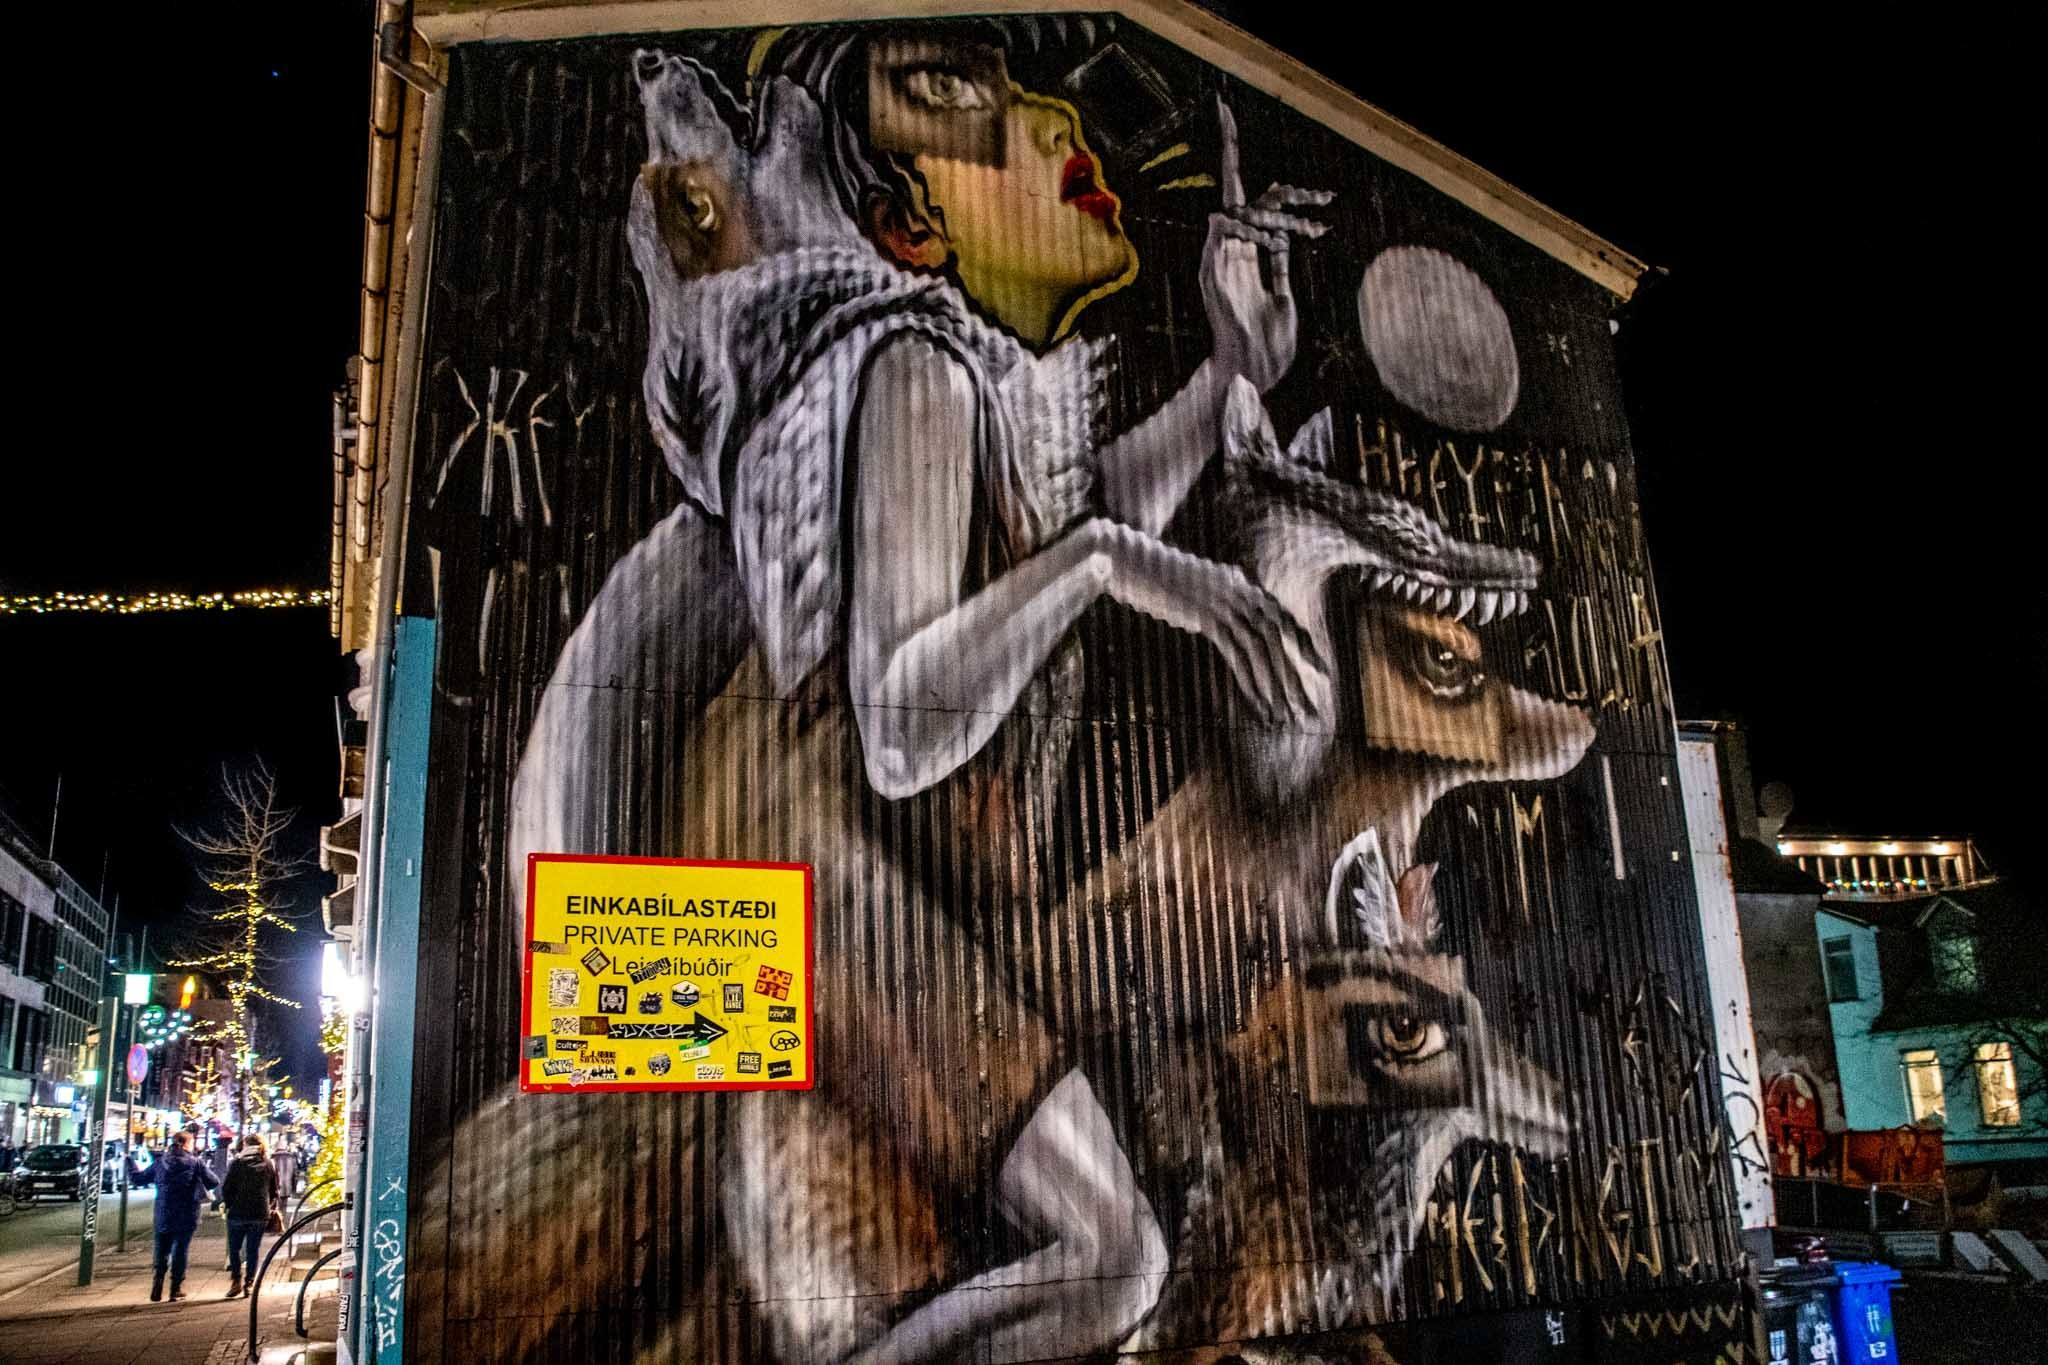 A street art mural featuring a woman and wolves